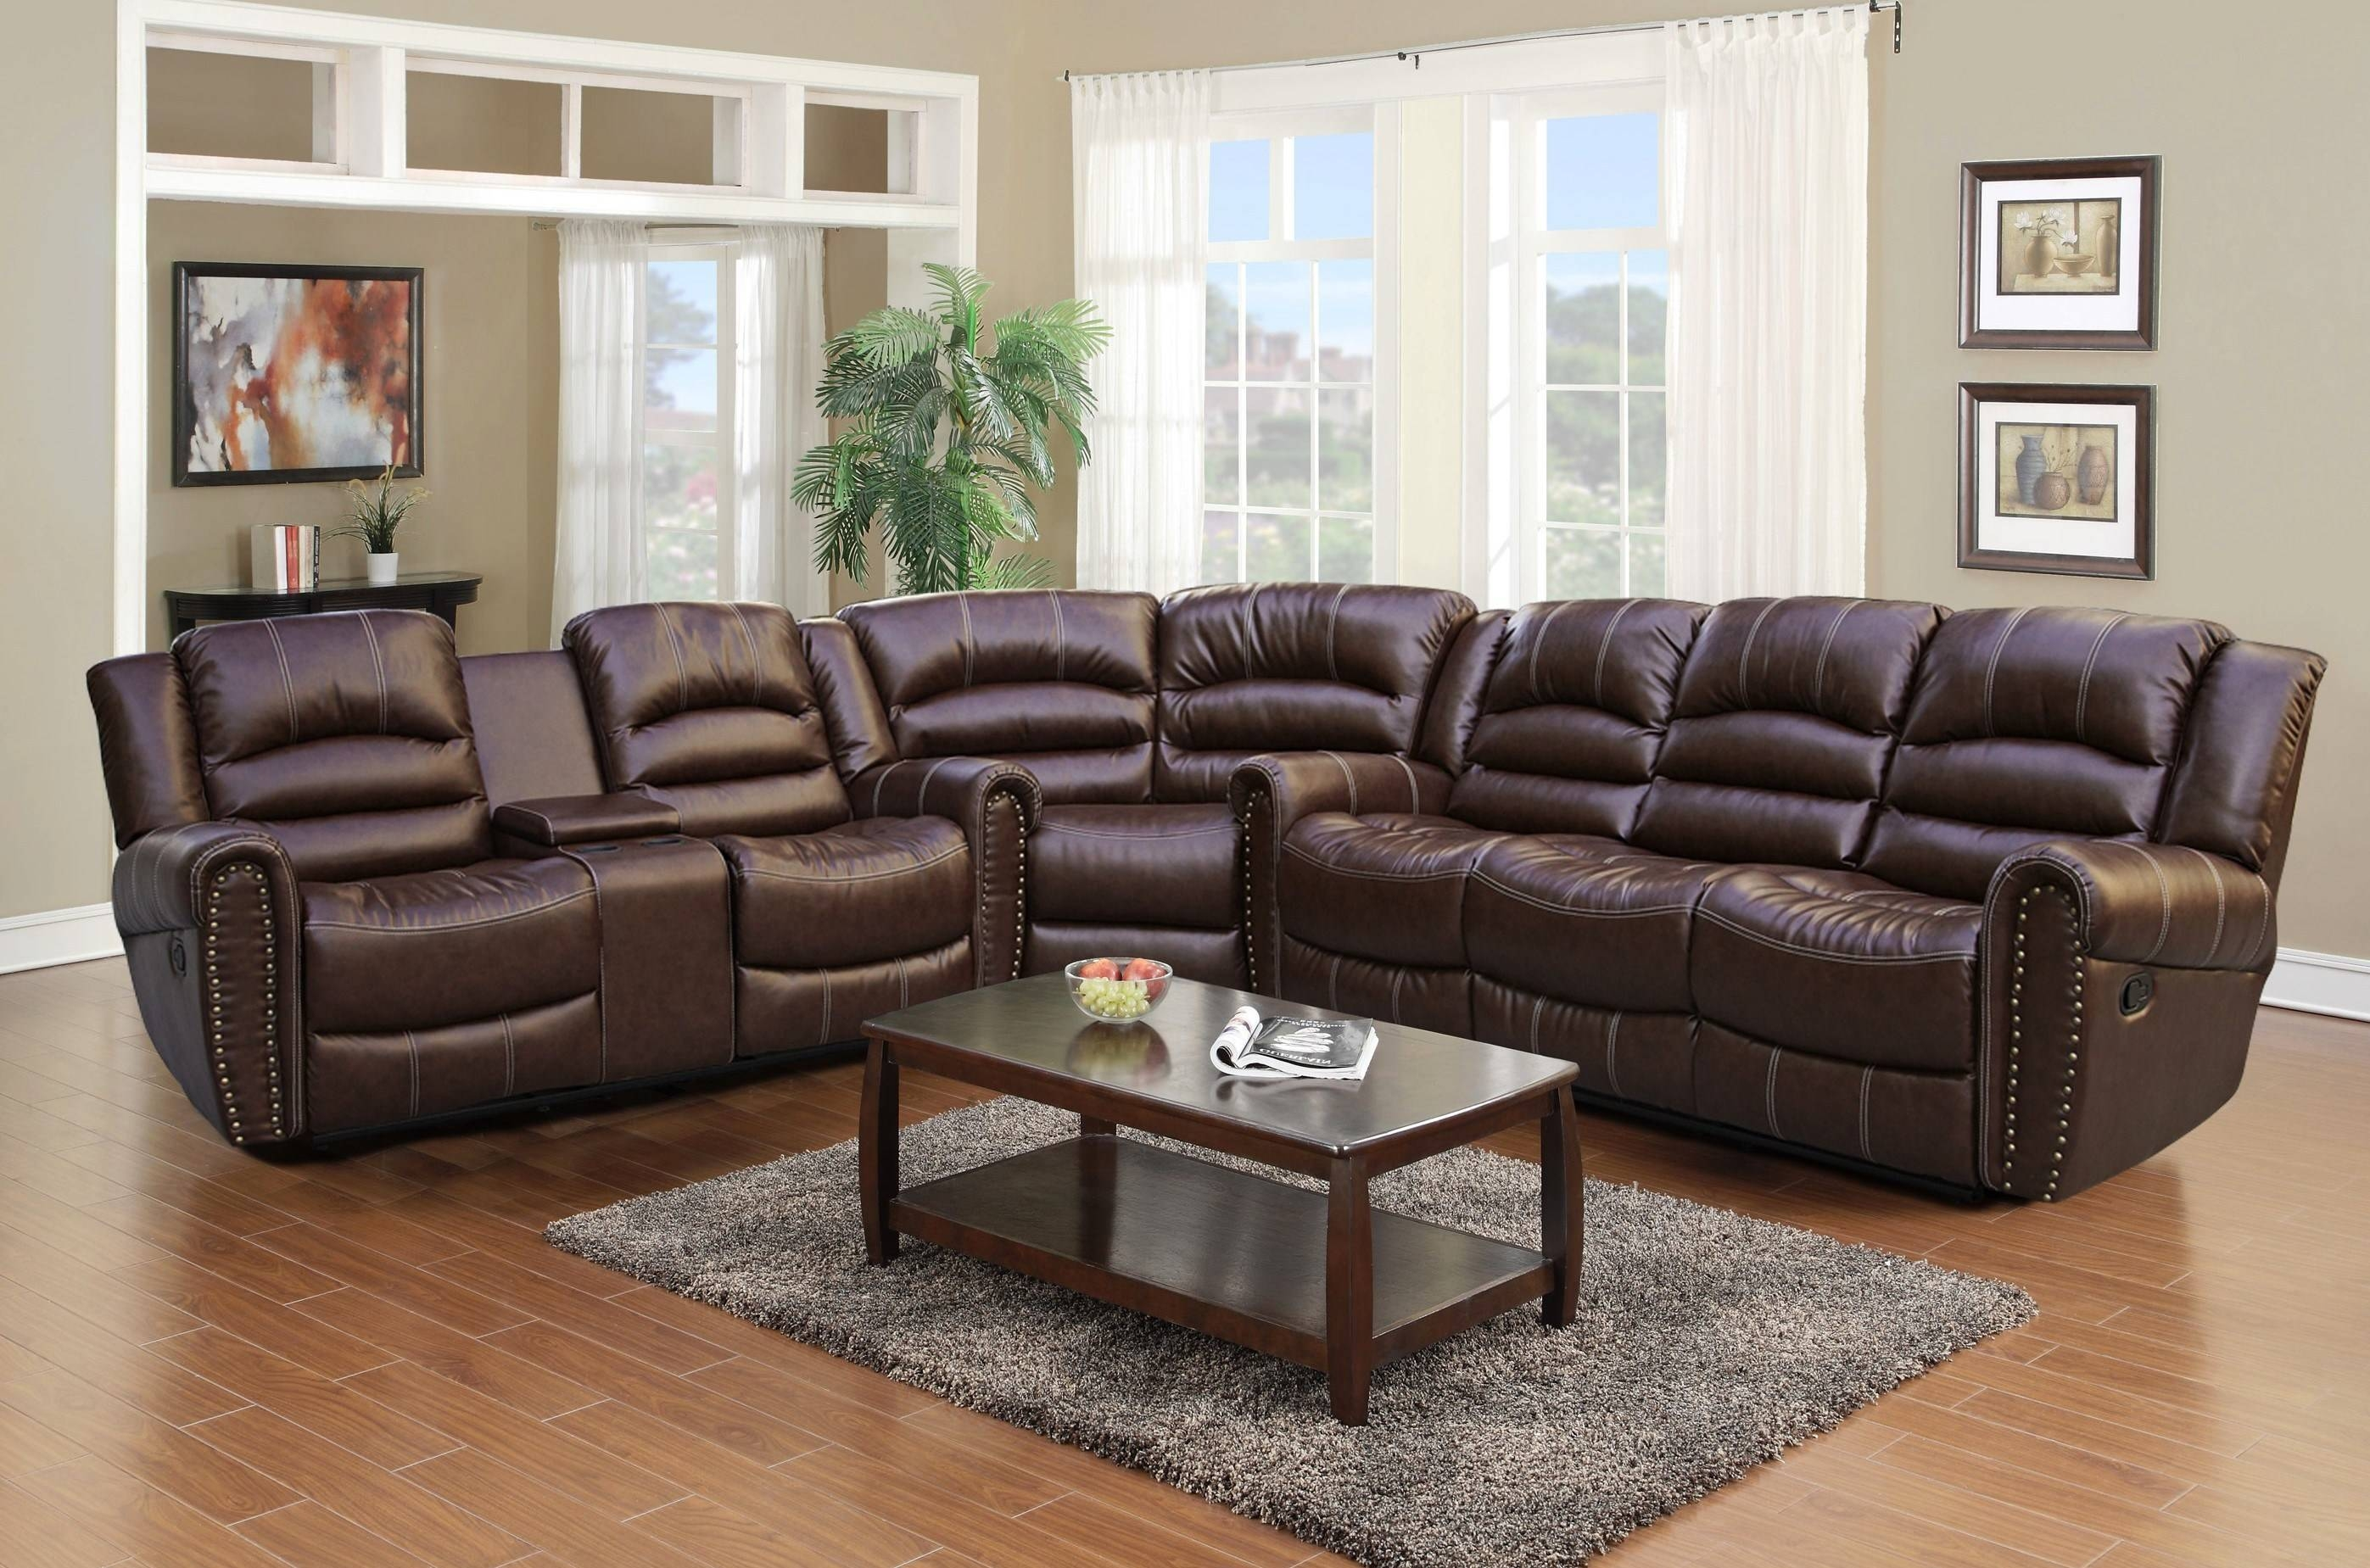 Comfortable Leather Sectional Sofa With Recliner And Chaise for Comfortable Sectional Sofa (Image 10 of 30)